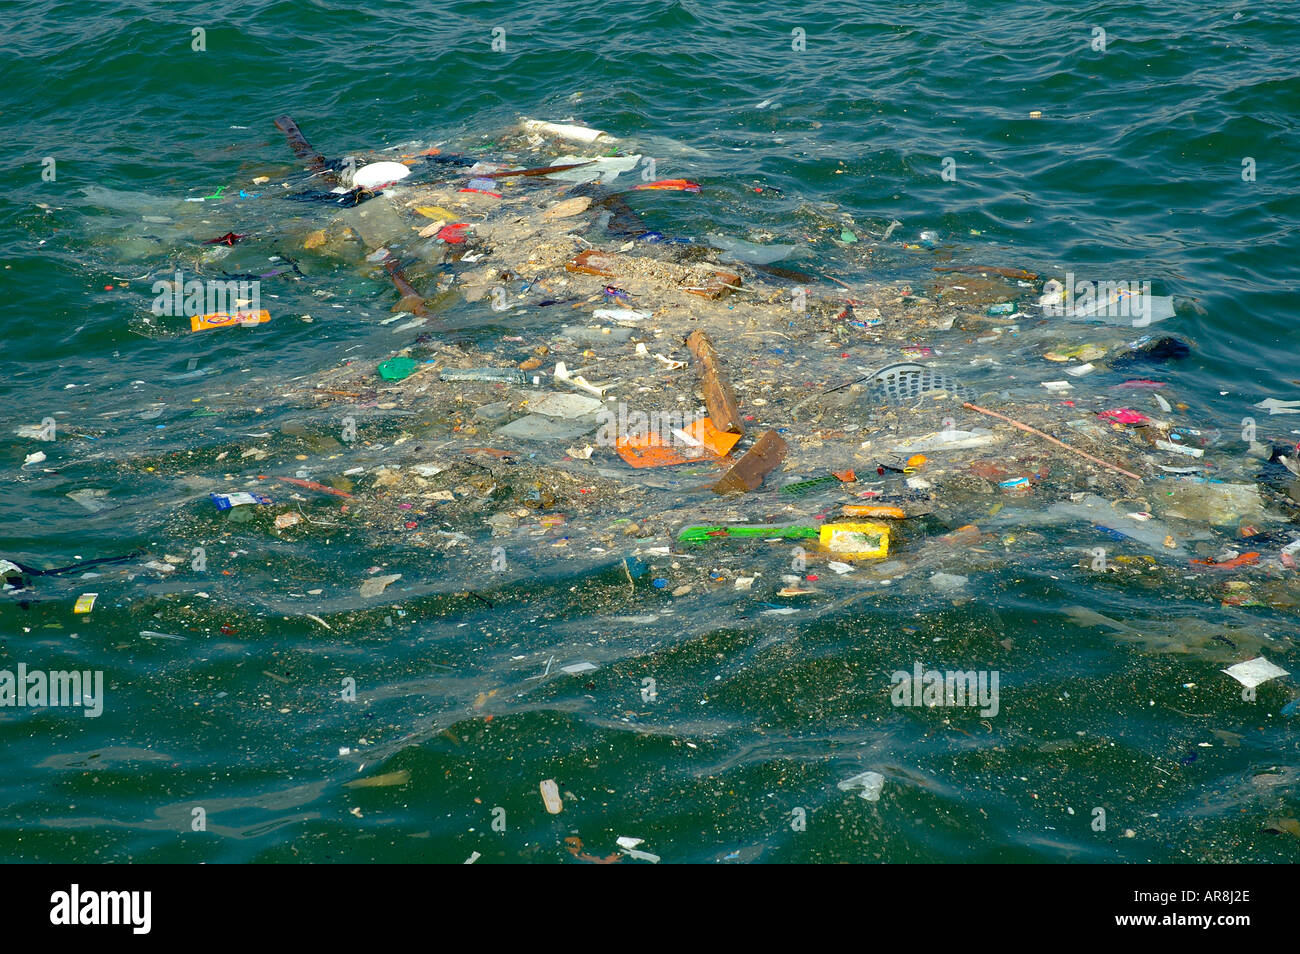 Sea Pollution By Plastic And Trash Stock Photo